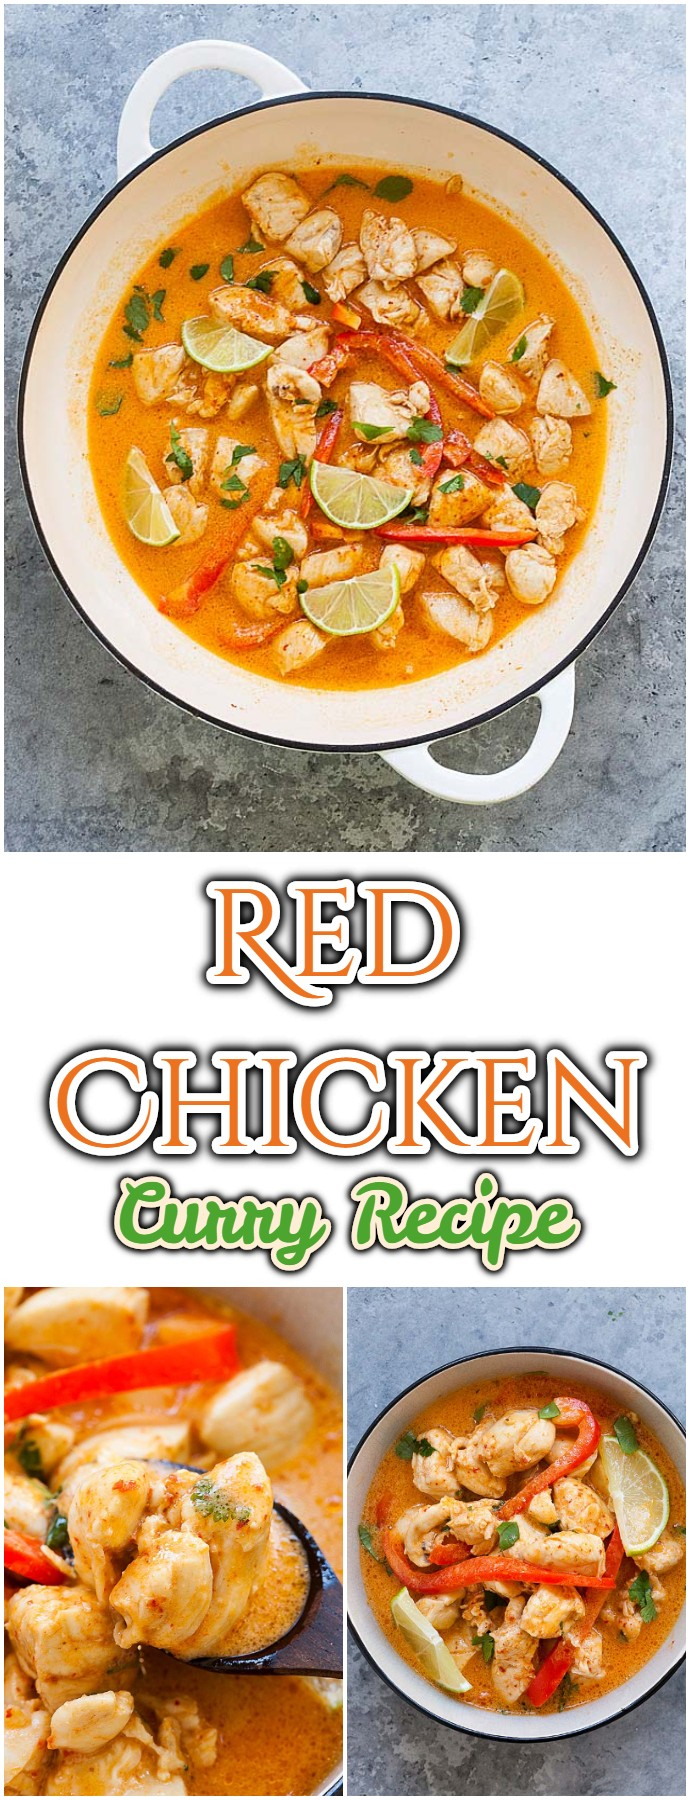 Red Chicken Curry Recipe